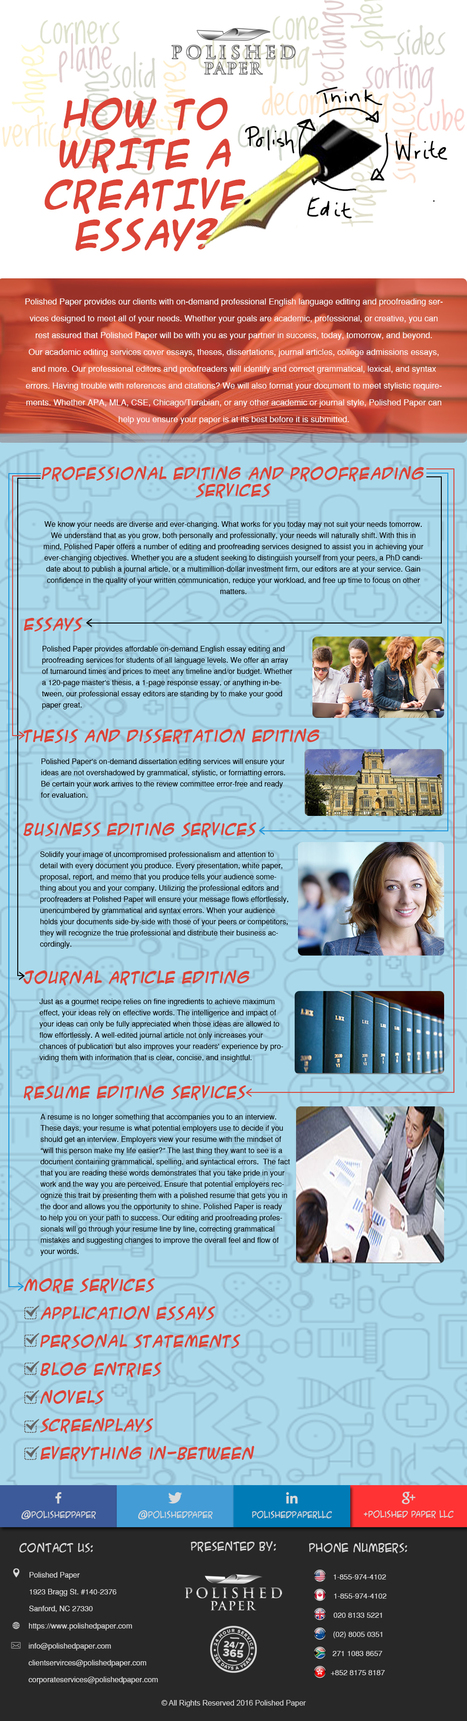 How to write a creative essay? | Academic Editing Service | Scoop.it